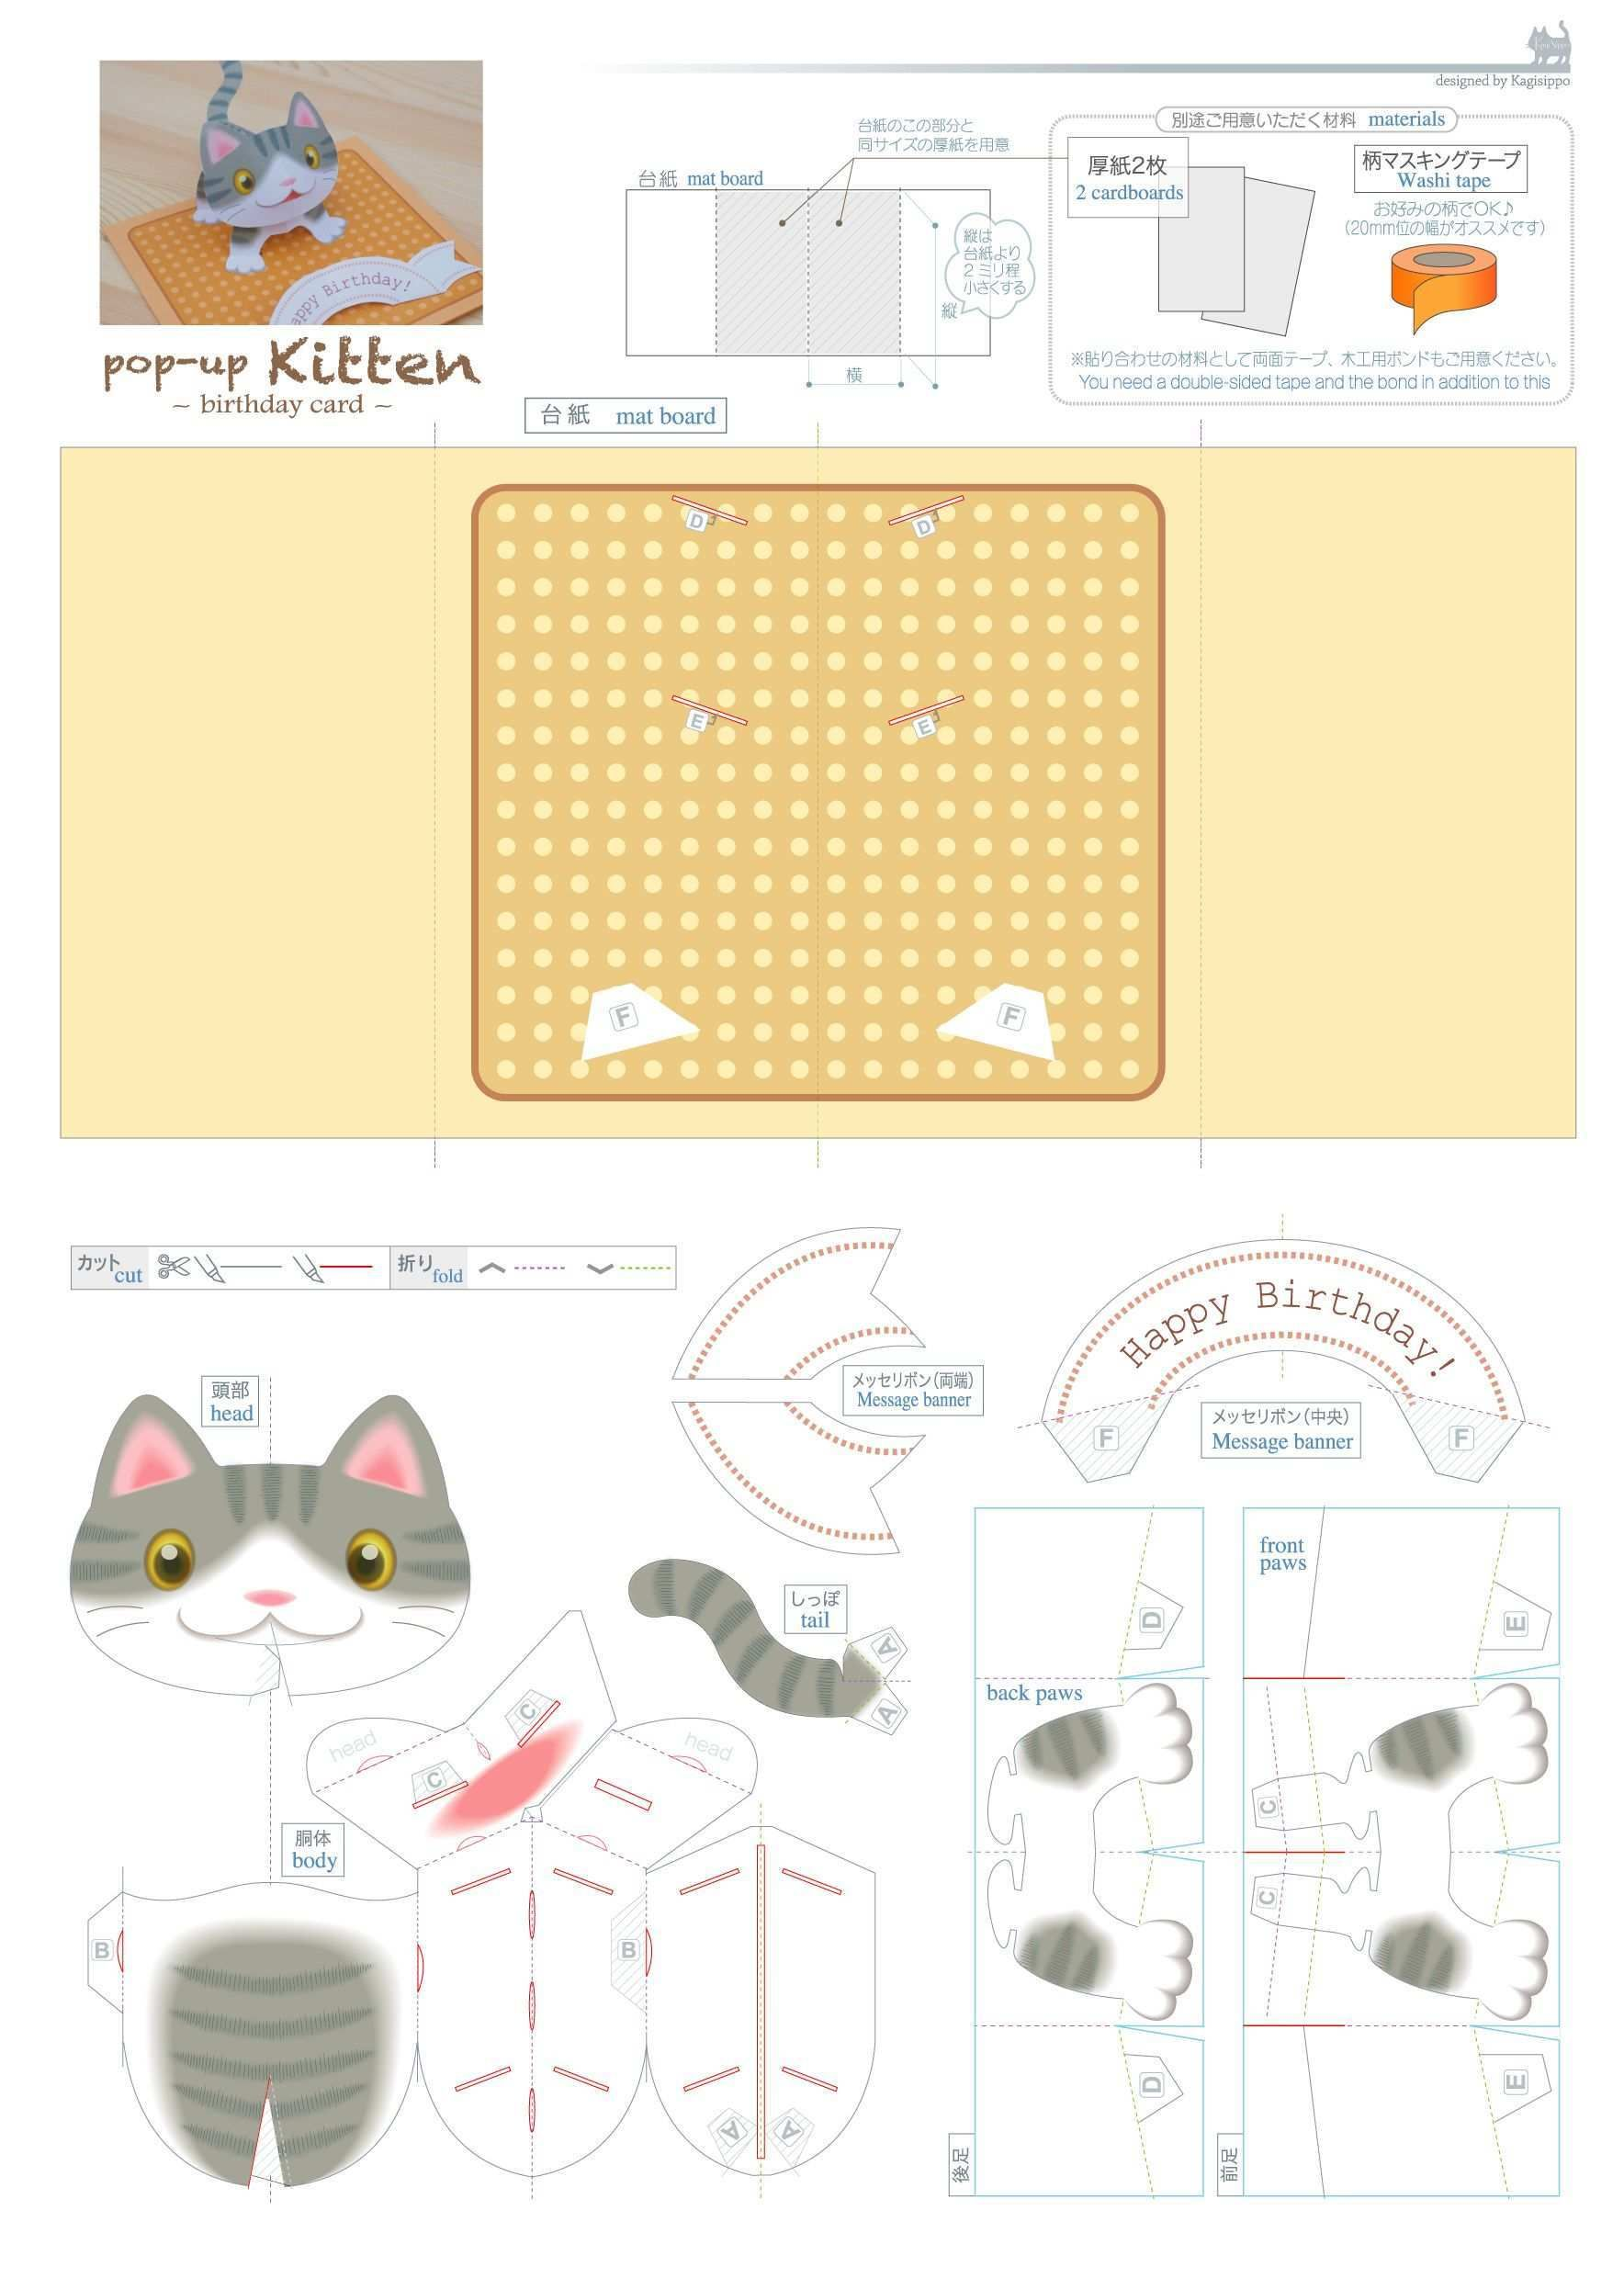 220 165 1768 2480 In 2020 Pop Up Card Templates Pop Up Cards Paper Pop